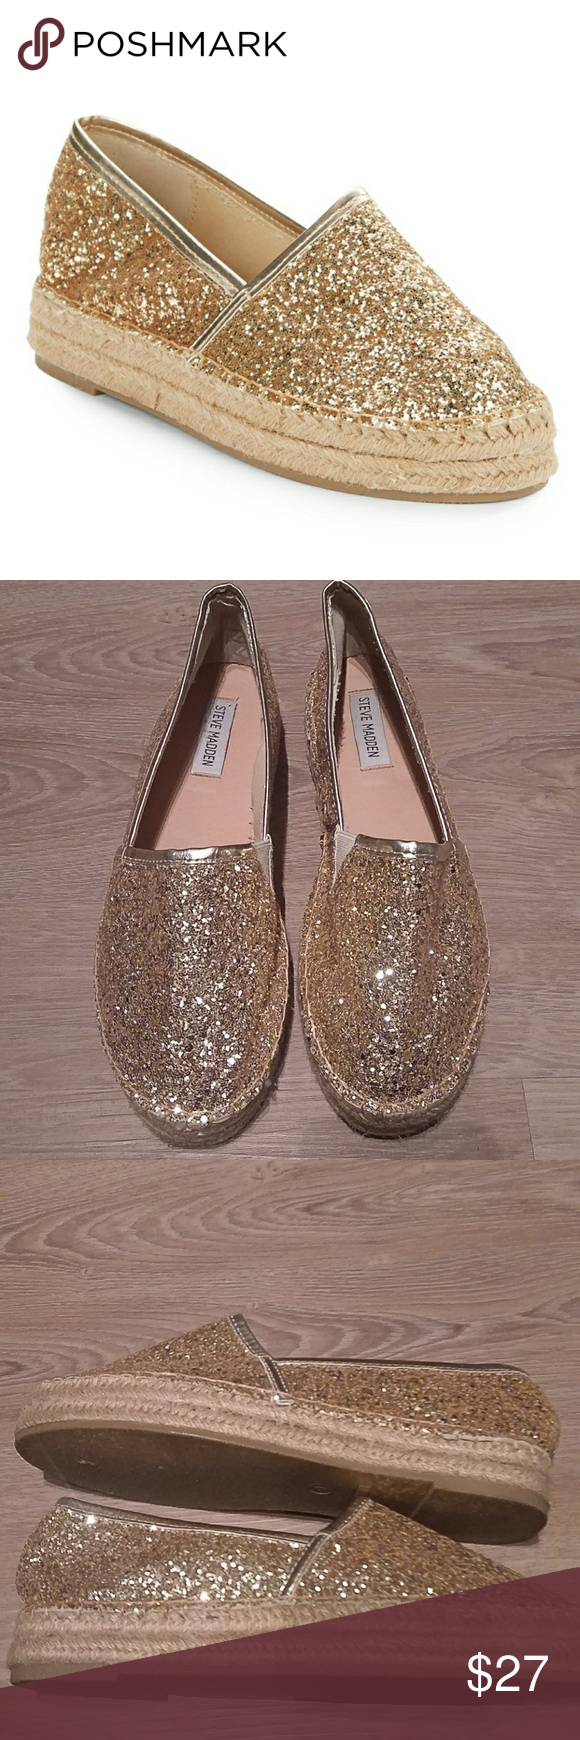 e25ca3477d1 New Steve Madden Luuka Gold Espadrilles Shoes True to size. - Round toe -  Allover gold glitter detail - Slip-on - Imported.Floor sample from store  display ...